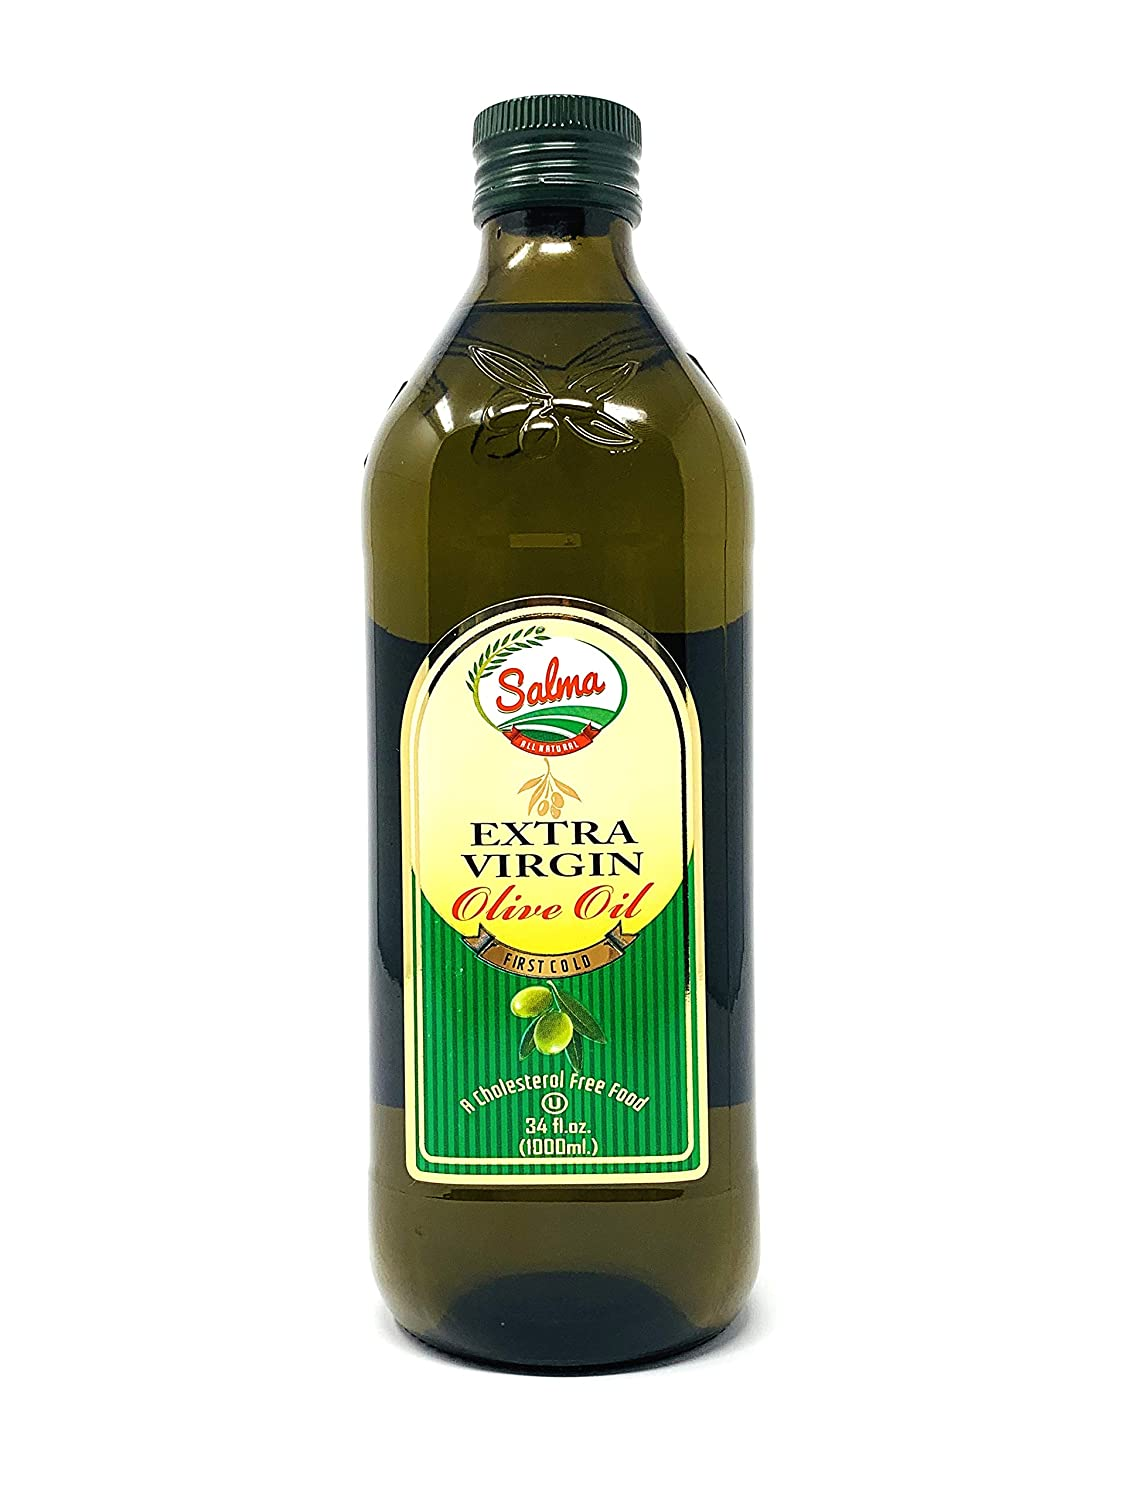 Amazon.com : Salma Extra Virgin Olive Oil (EVOO), First Cold Pressed, Imported from Morocco, Low Acidity, Glass Bottle (750 mL) 25.5 Fl Oz : Grocery & Gourmet Food